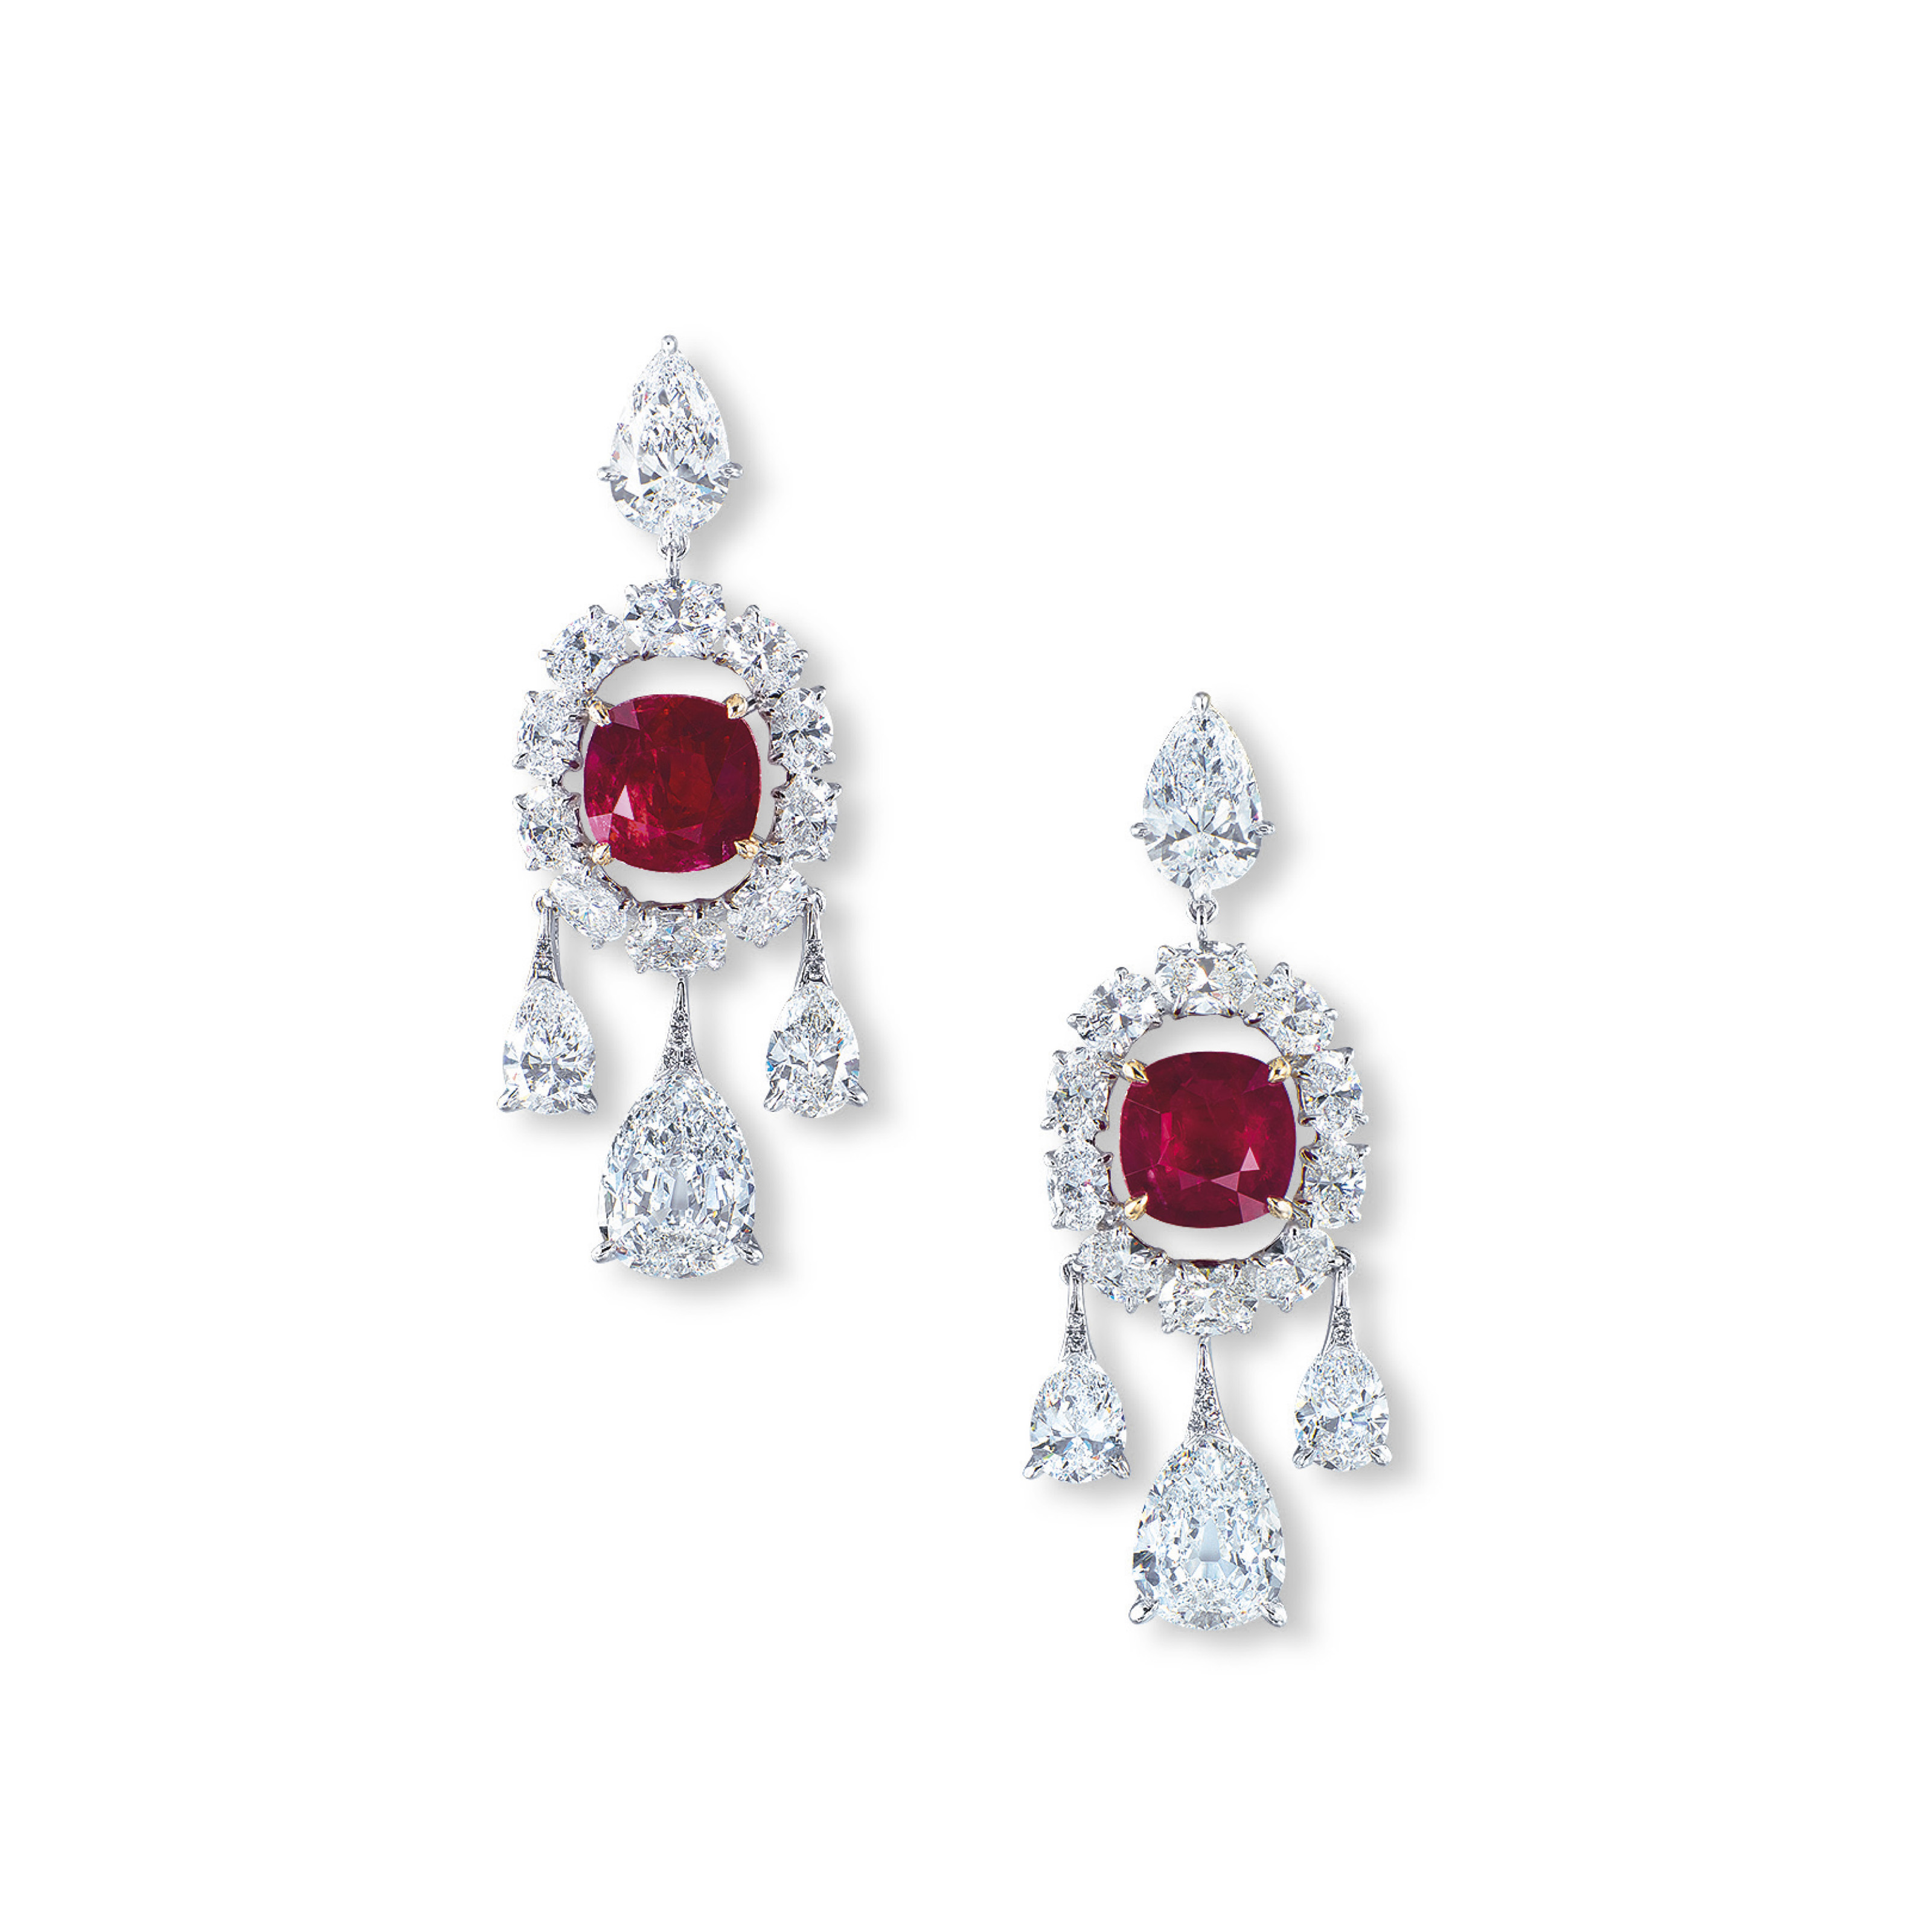 A MAGNIFICENT PAIR OF RUBY AND DIAMOND EAR PENDANTS, BY ETCETERA